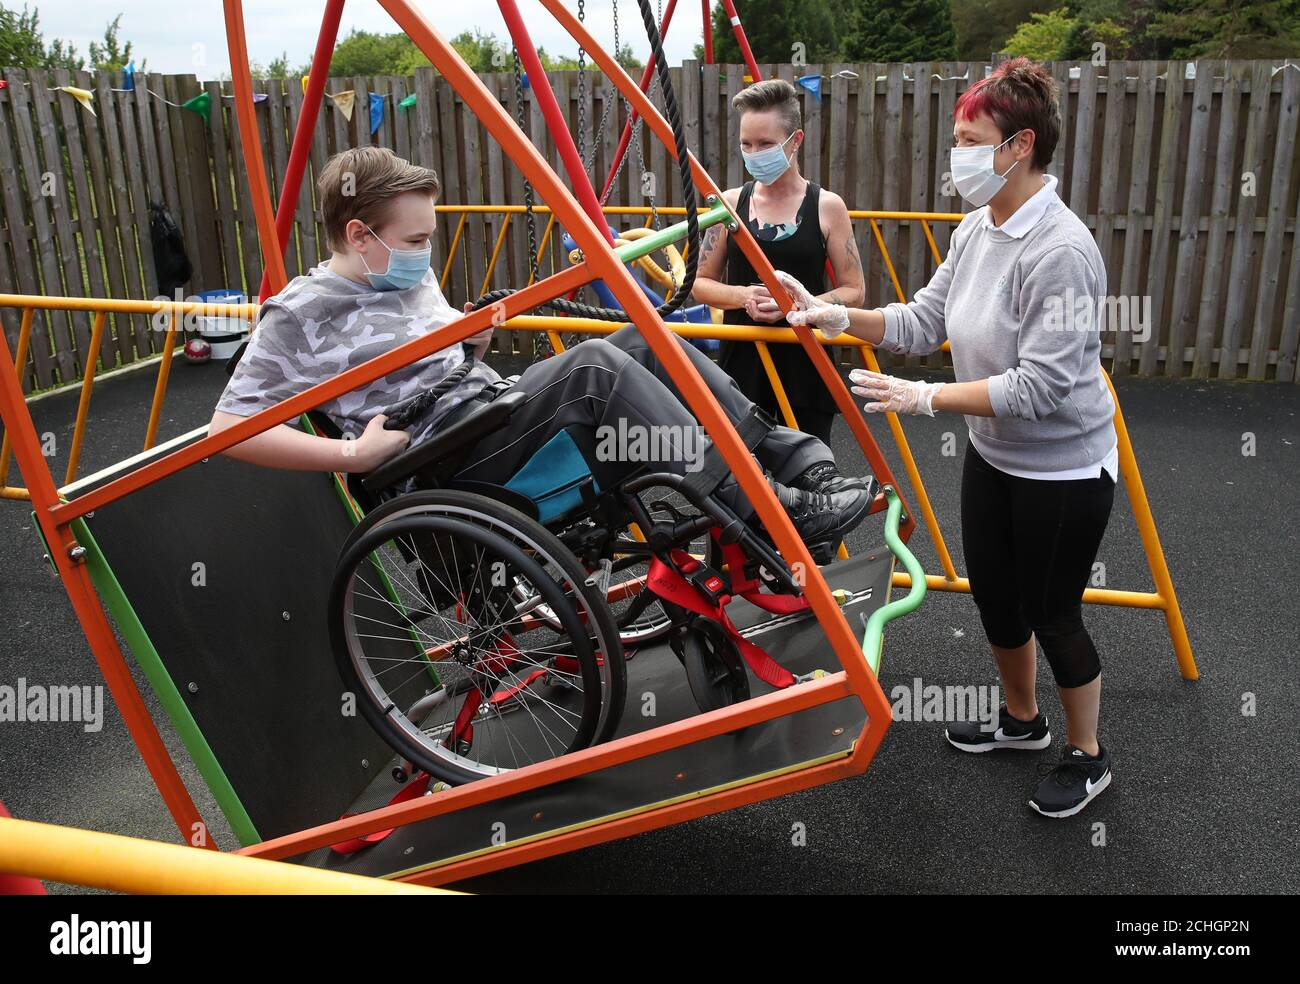 Embargoed to 0001 Monday June 22 Gregor Marshall with his mum Karen alongside Early Years Practitioner Catherine Anderson (right) as Gregor has a ride on the wheelchair swing in the outside therapy area at the Craighalbert Centre. Coronavirus adaptations have been installed at the Scottish Centre for Children with Motor Impairments, Craighalbert Centre, Cumbernauld, as Scotland continues gradually lifting coronavirus lockdown measures. Stock Photo